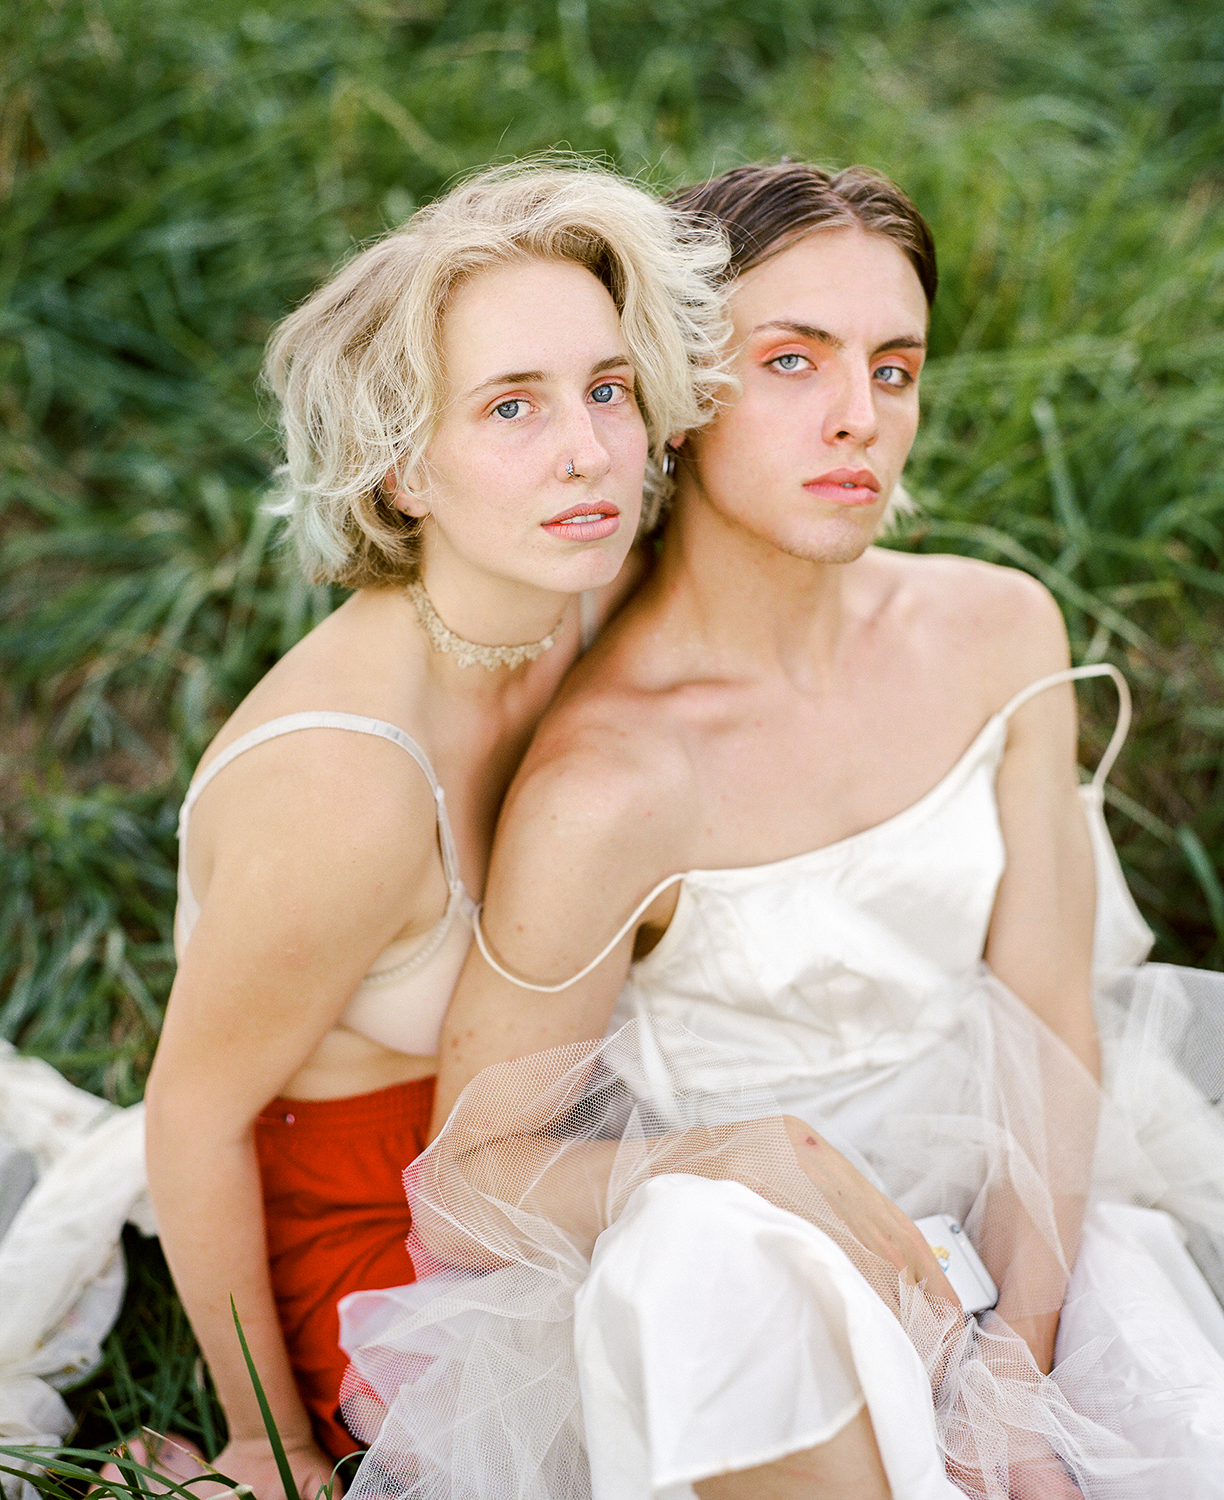 Hayden and Conor , 2017 Archival pigment print Edition: 1/10 Image size: 19 x 23 1/4 inches 2017-140